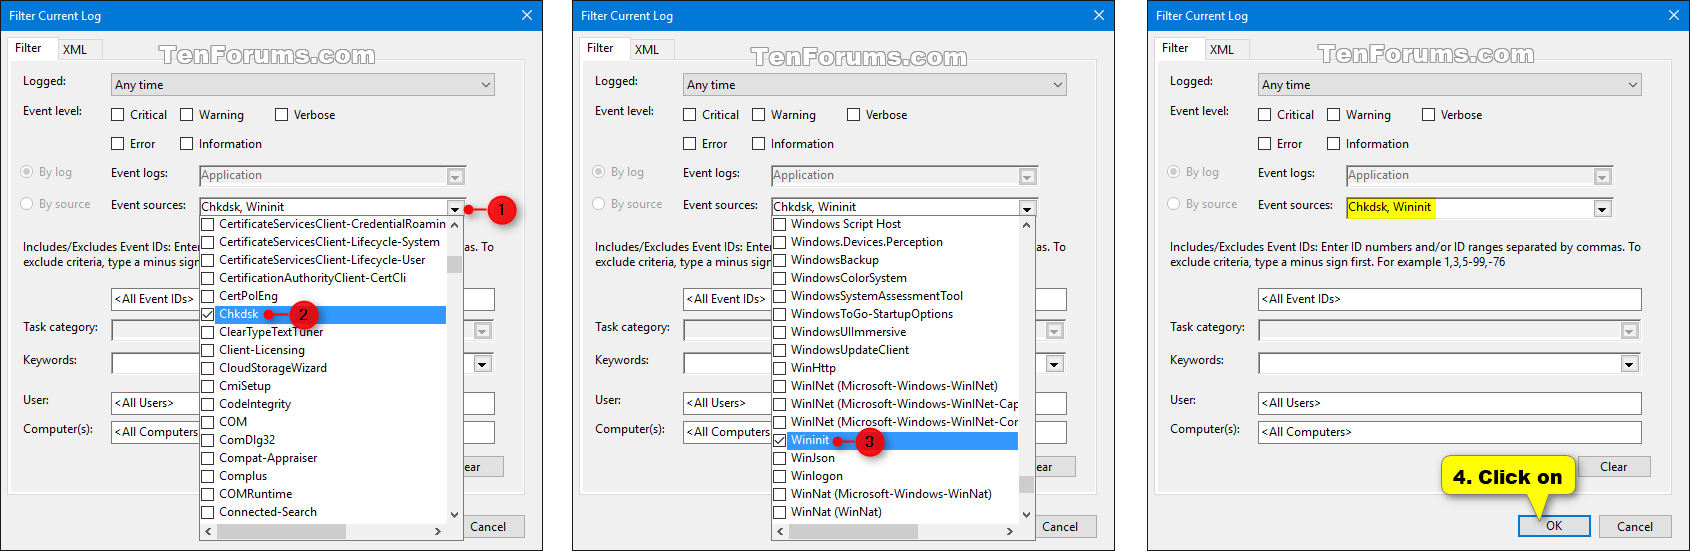 how to delete events in event viewer